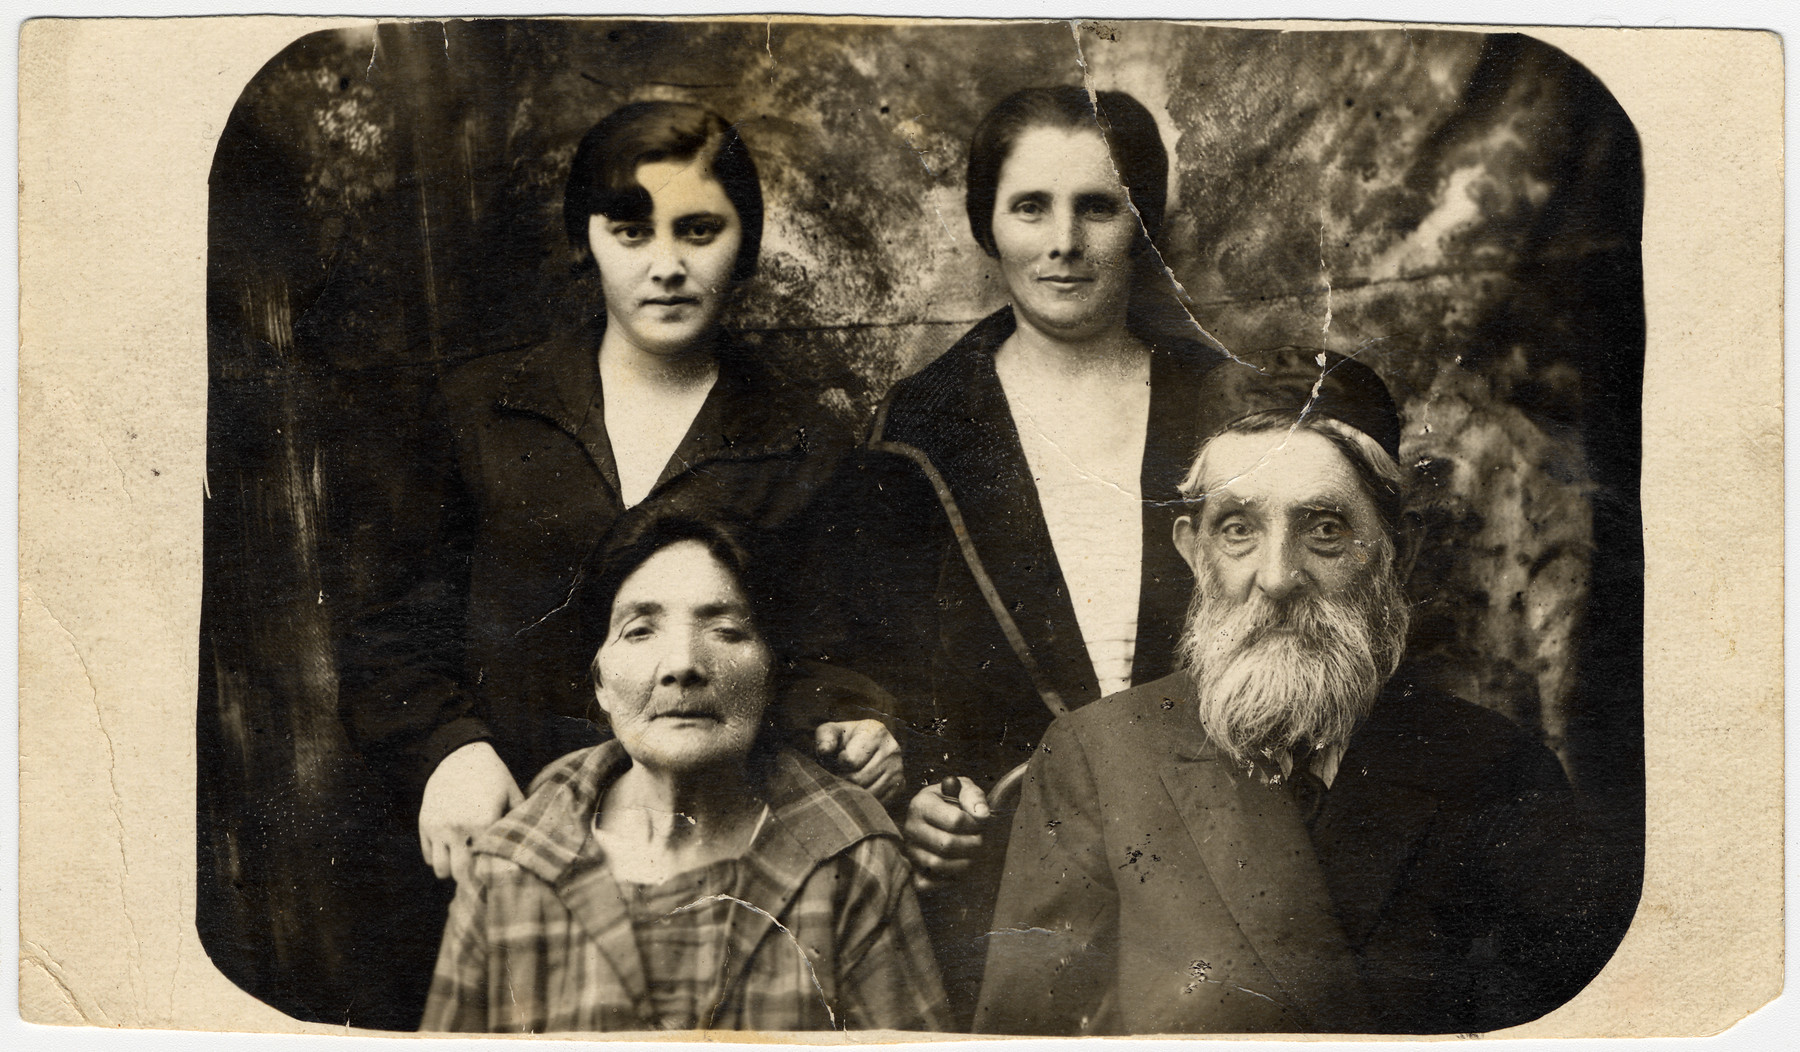 Studio portrait of three generations of the Nudelman Cycelman family.  Pictured are Slava Nudelman and third husband, Sonja Cygelman and Rachel Nudelman Cygelman.  Rachel is Slava's daughter and Sonja's mother.